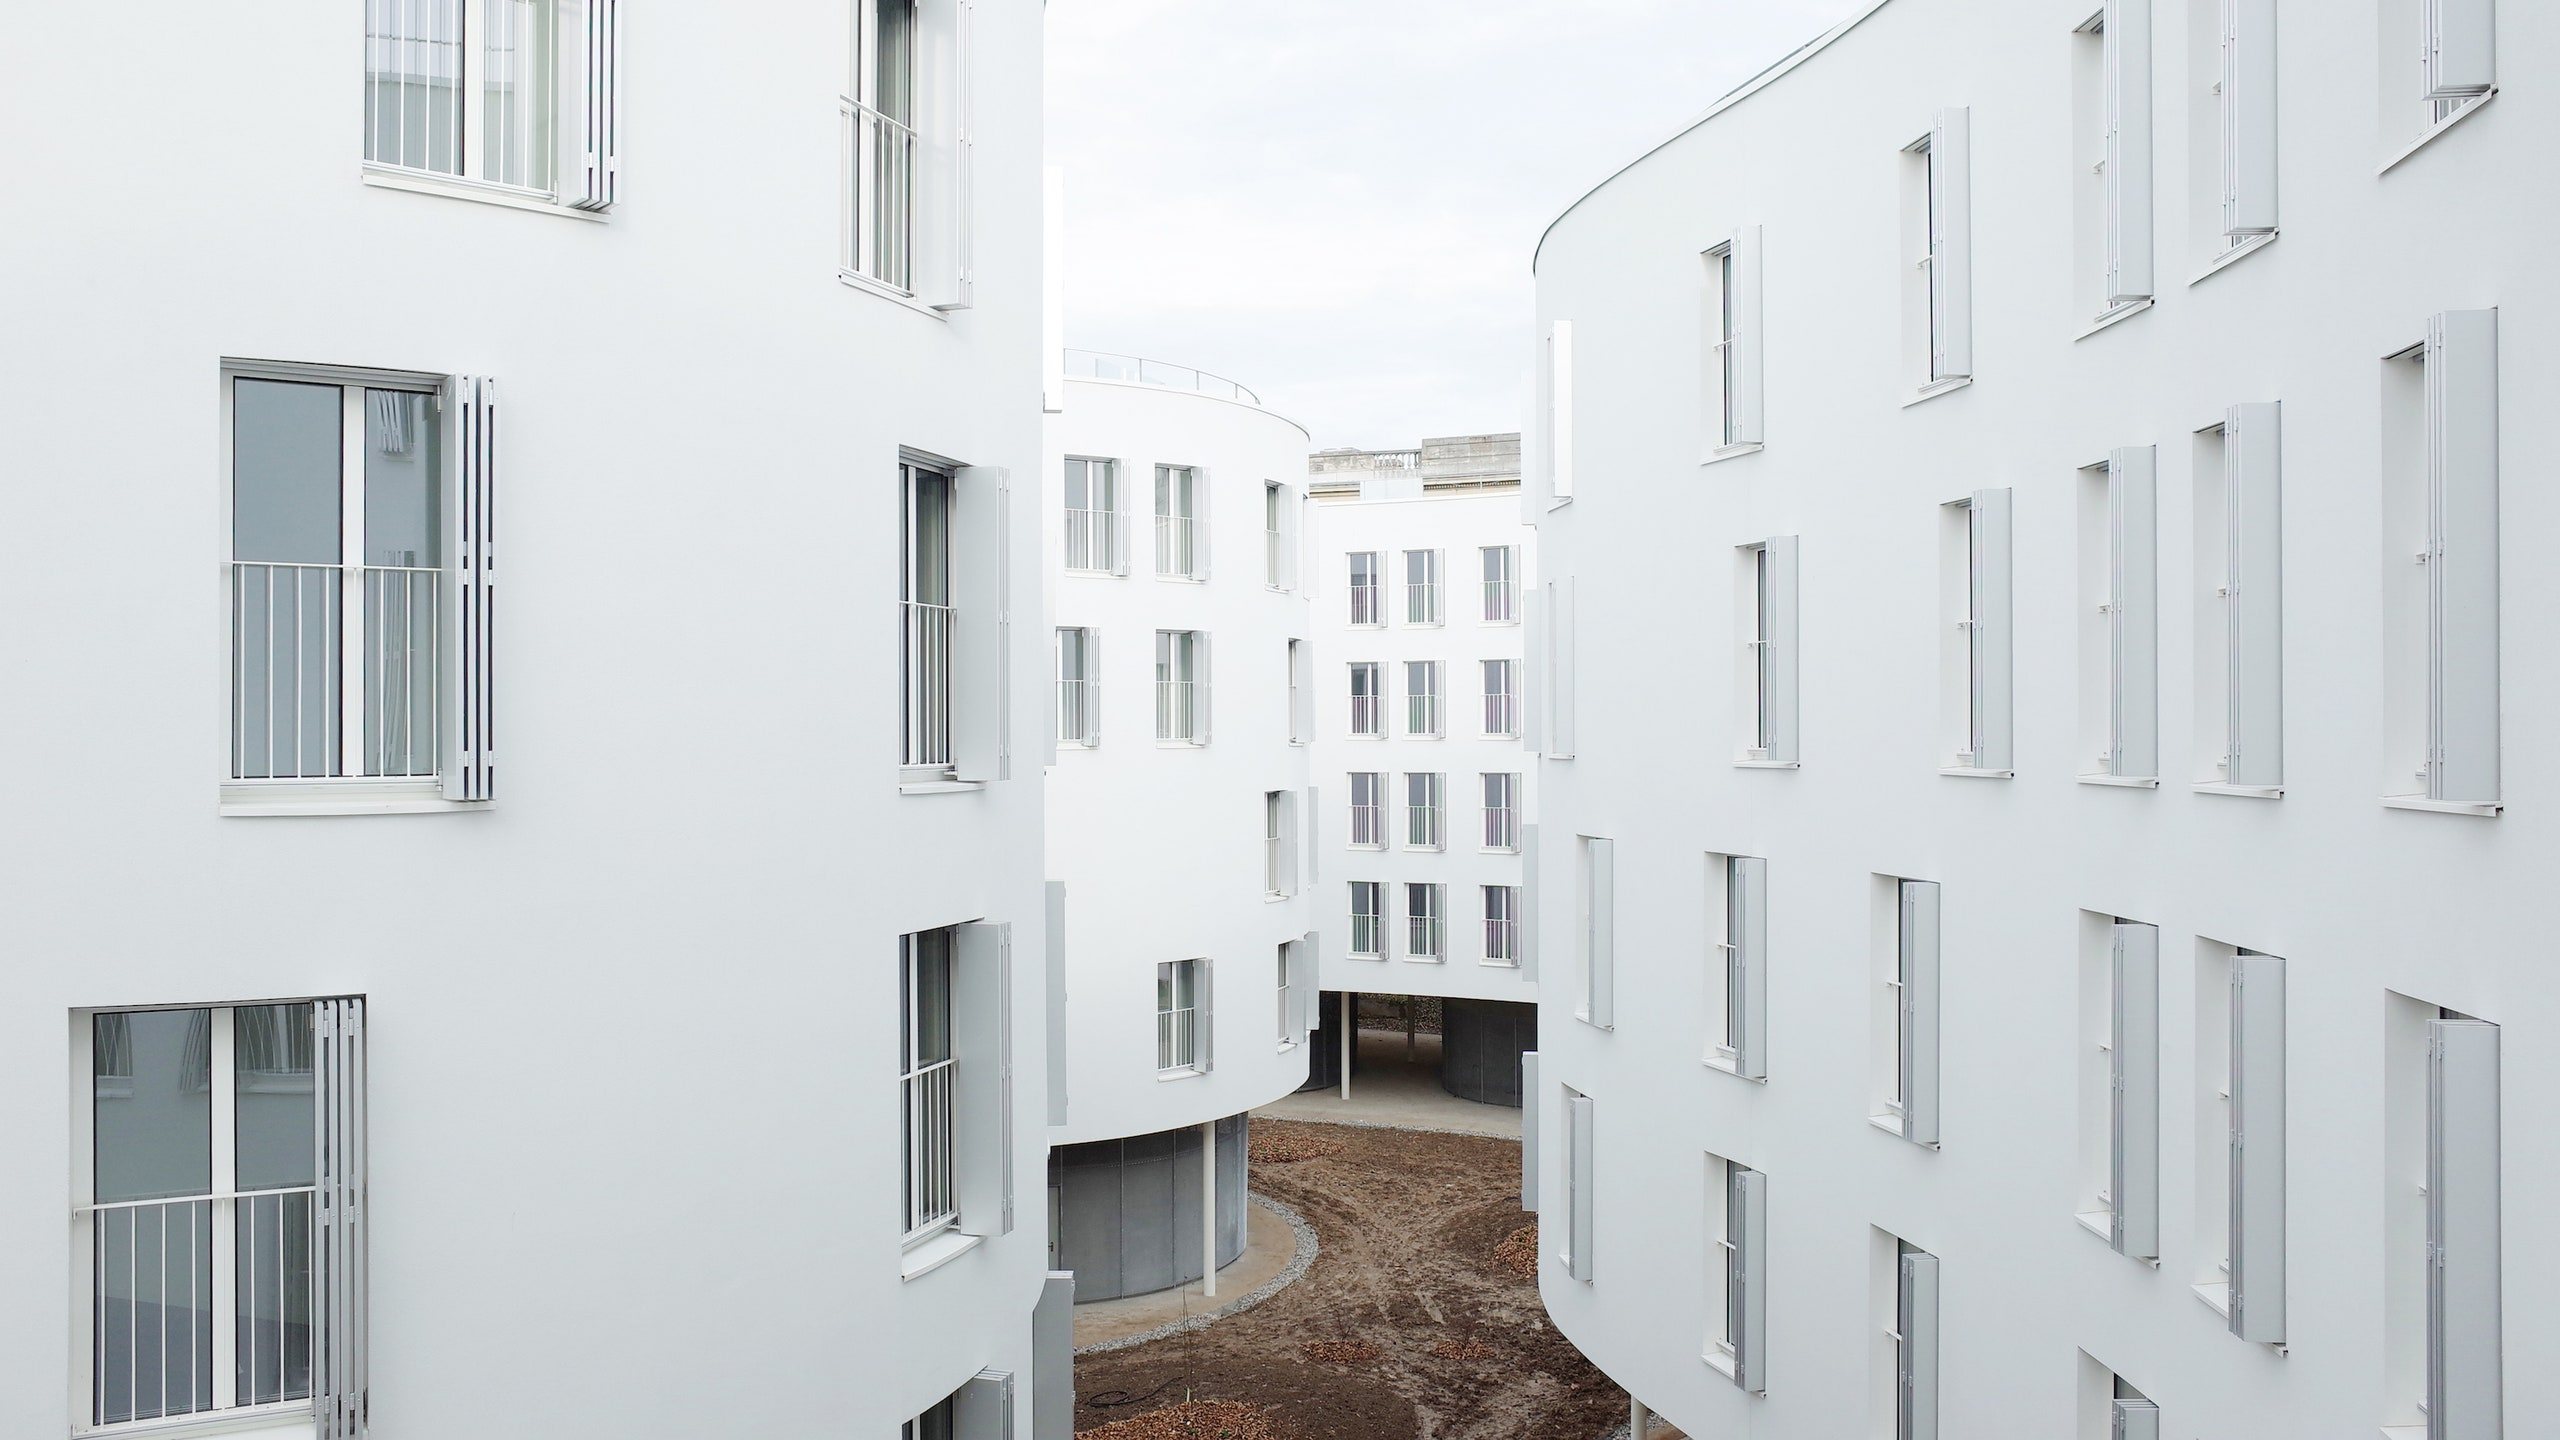 Sanaa Designs This Elegant Social Housing Complex In Paris Architectural Digest Middle East